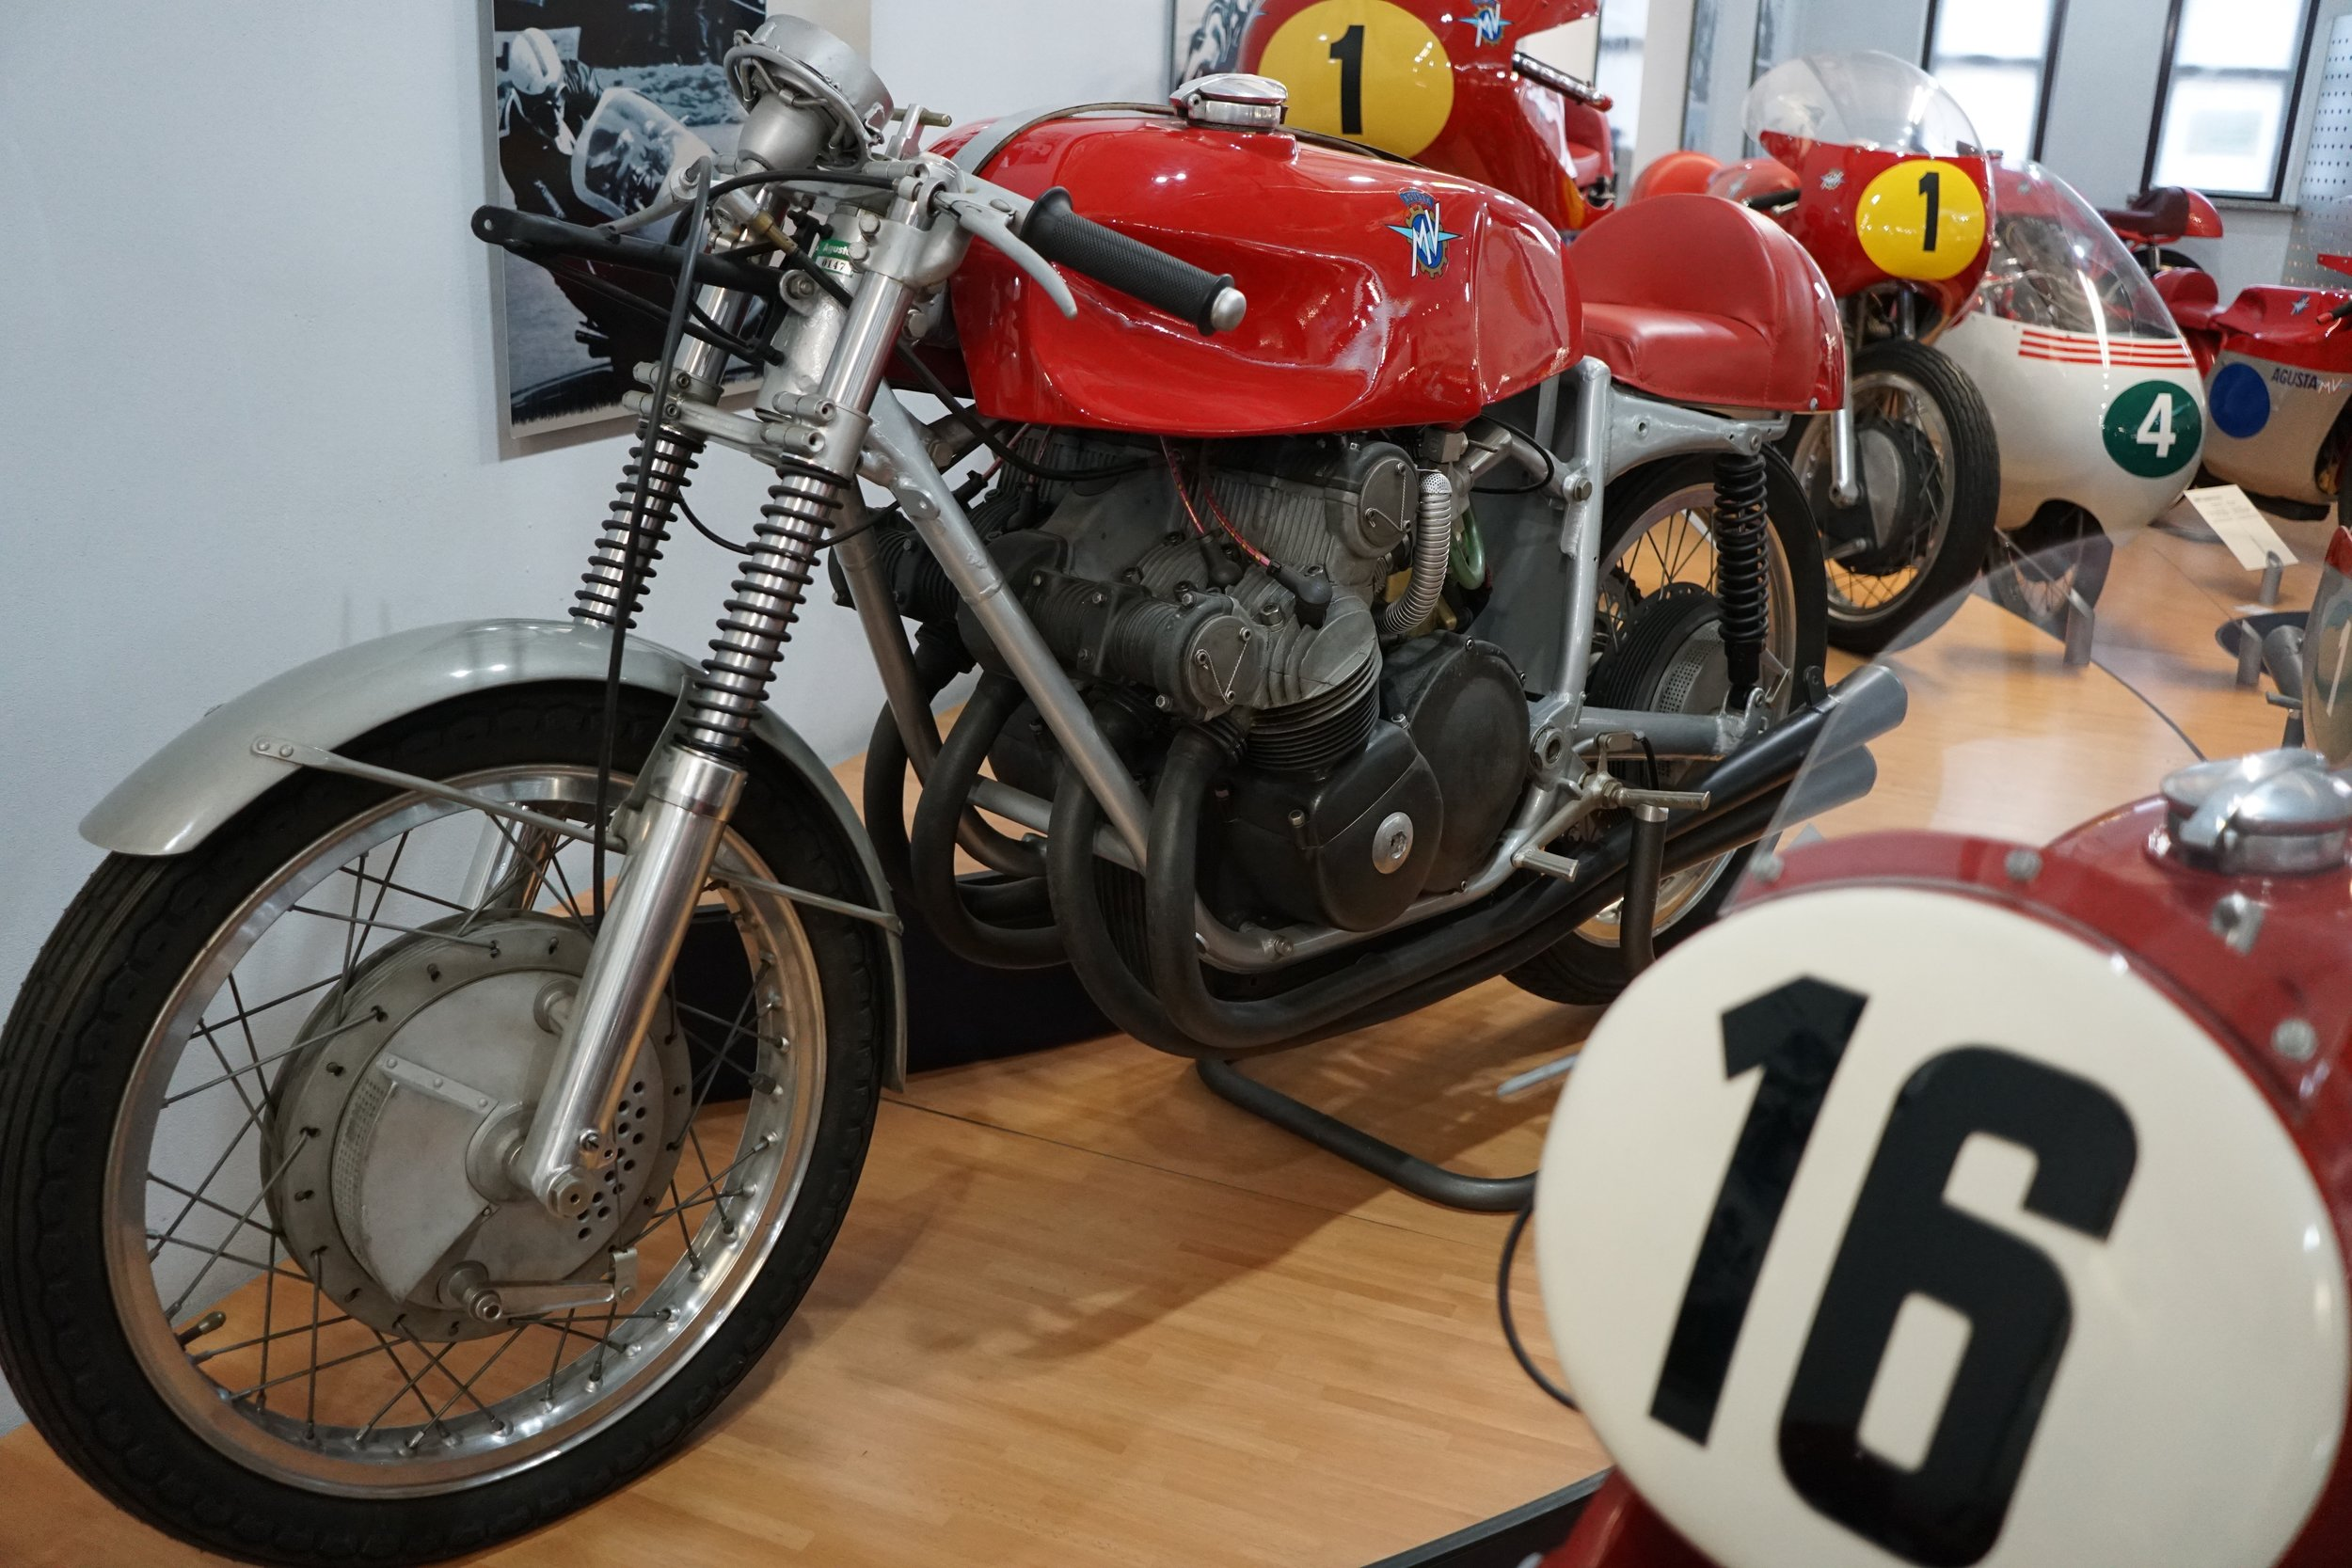 '56 350-4 – This 350cc four-cylinder is of the type raced from 1953-'63. DOHC, five speeds, 51.5 hp @ 11,000 rpm. Mike Hailwood delivered the last victory for this model at the scary old Imatra circuit in Finland, in 1963.